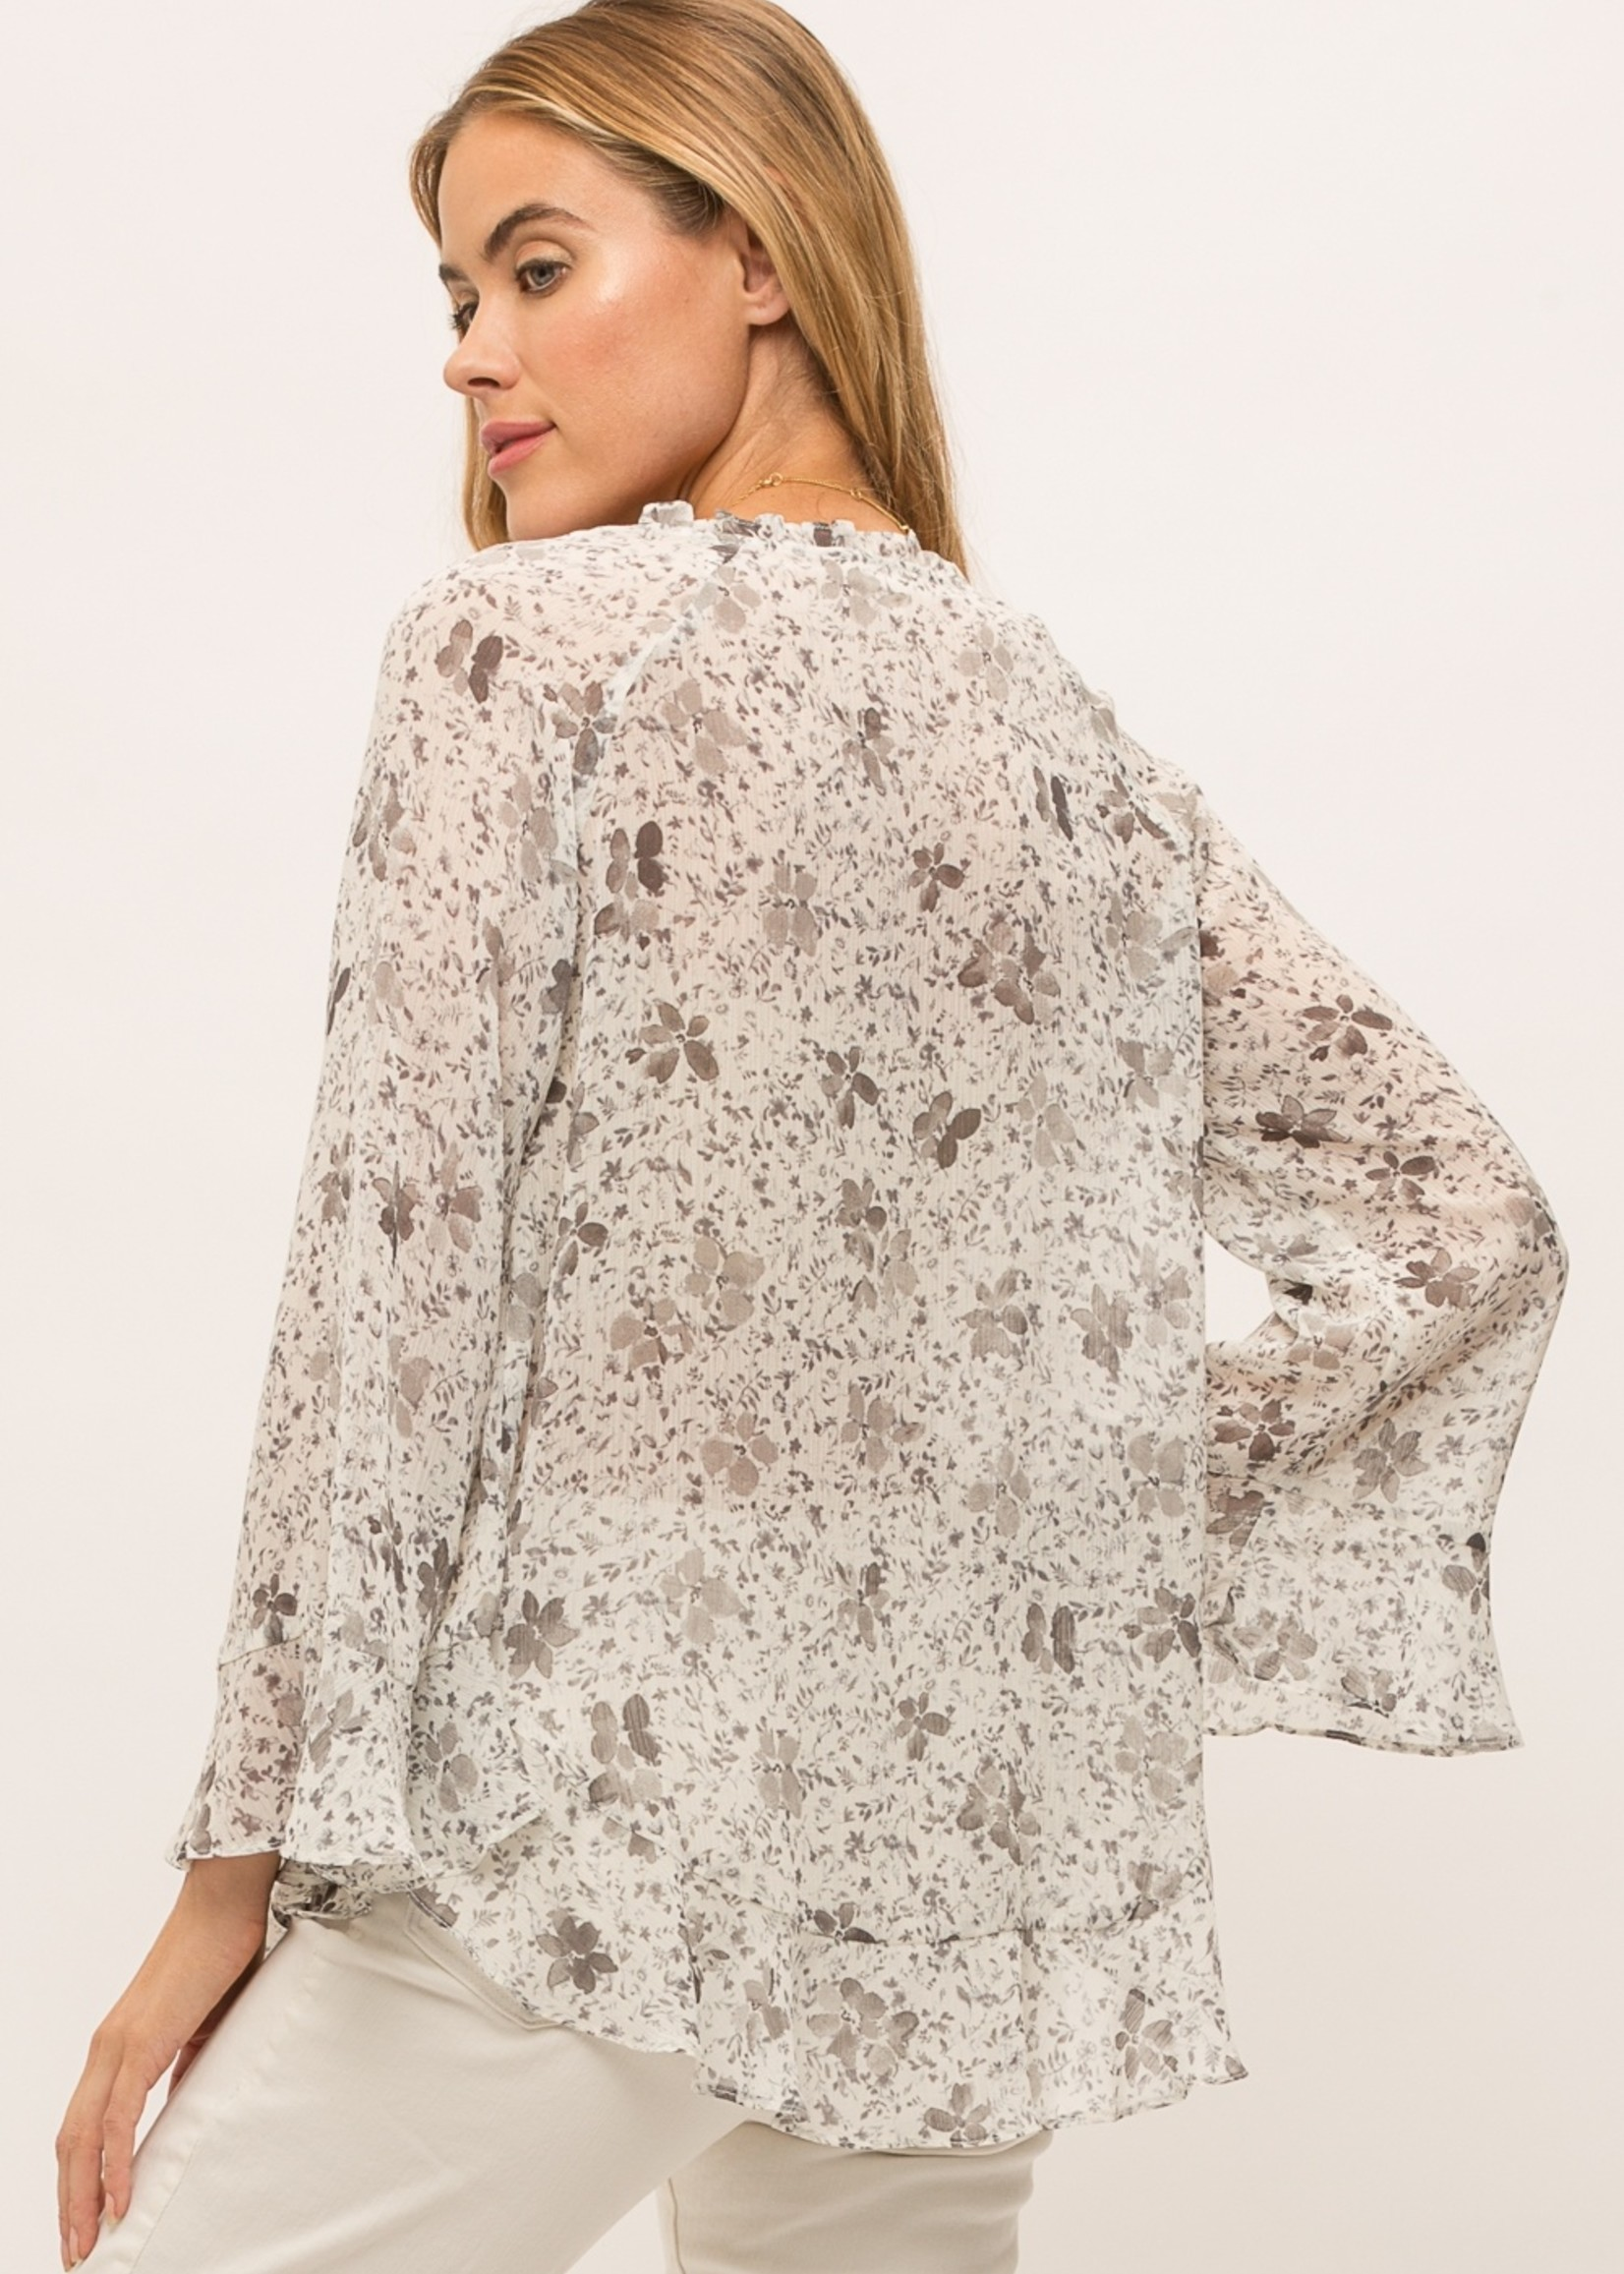 Mystree Mystree Ivory Floral Blouse